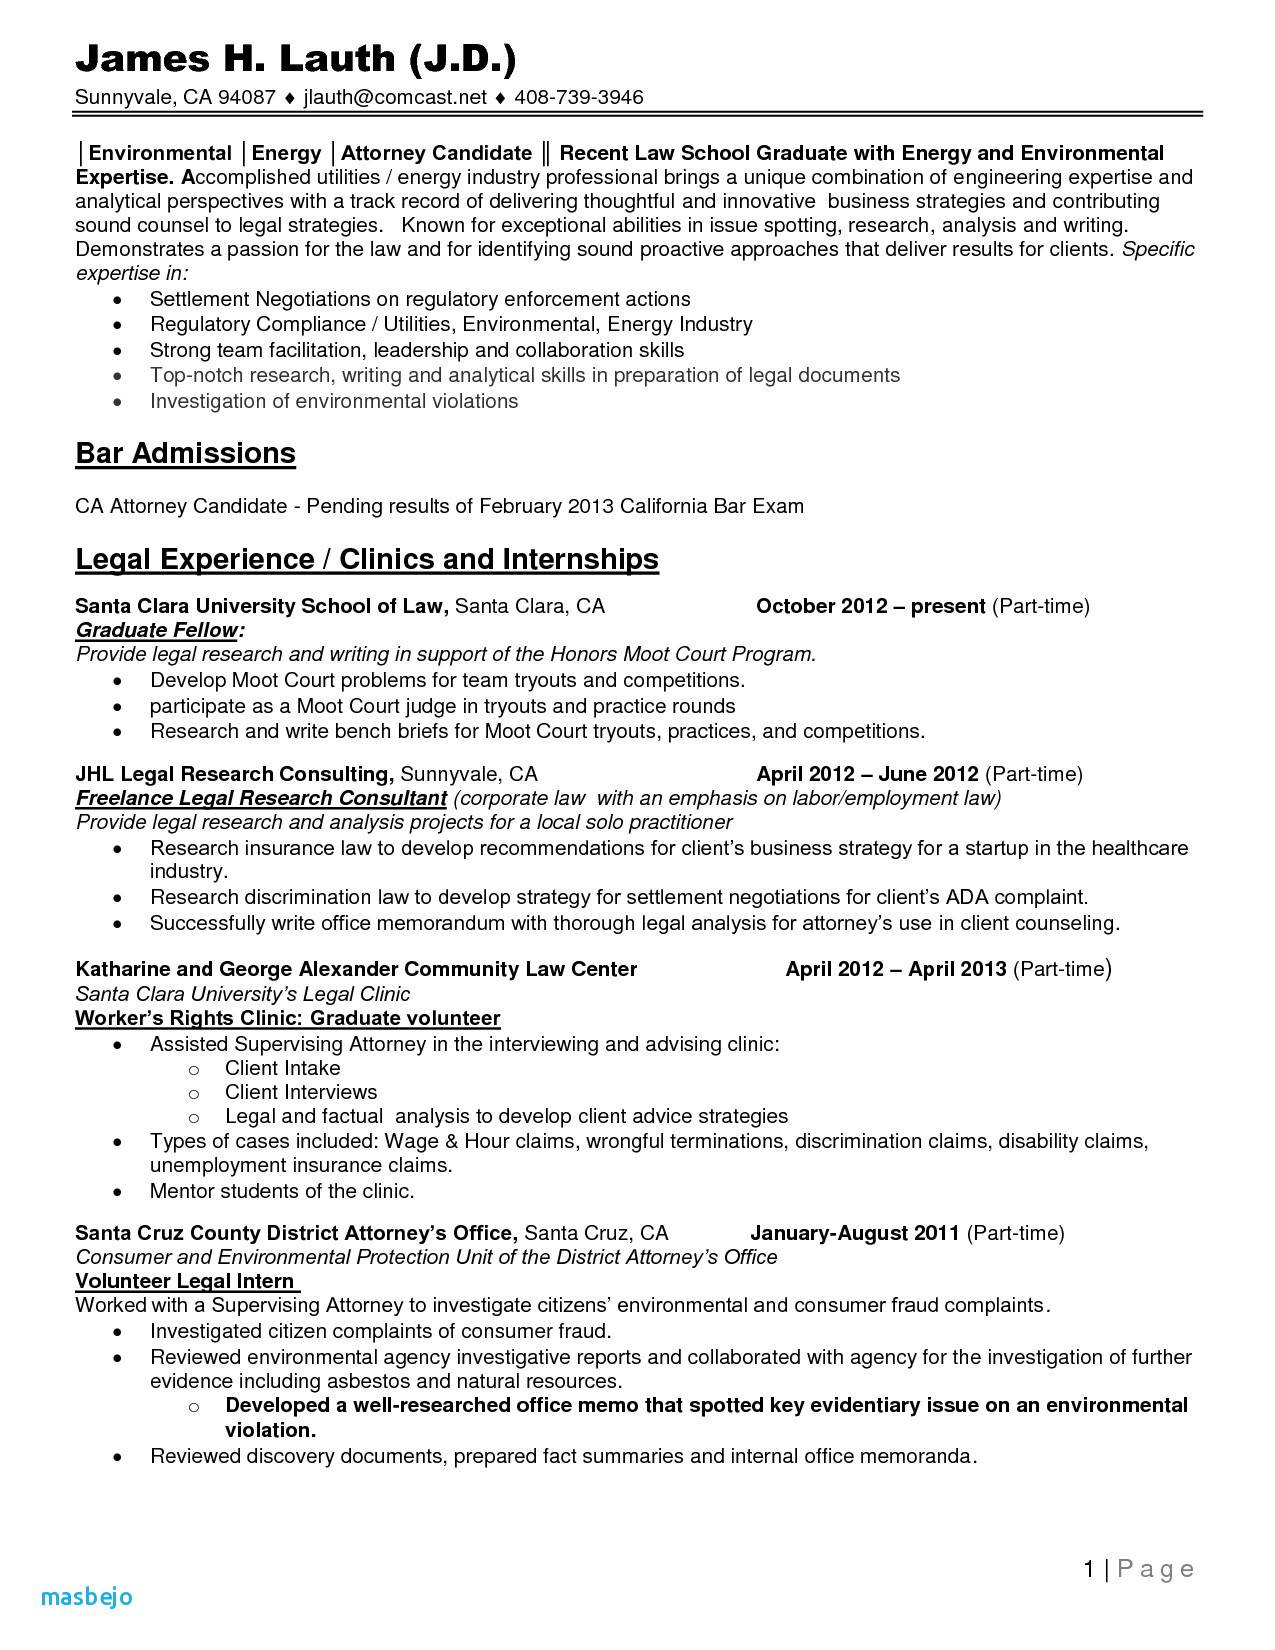 Resumes for Law School - 31 Best Legal Templates